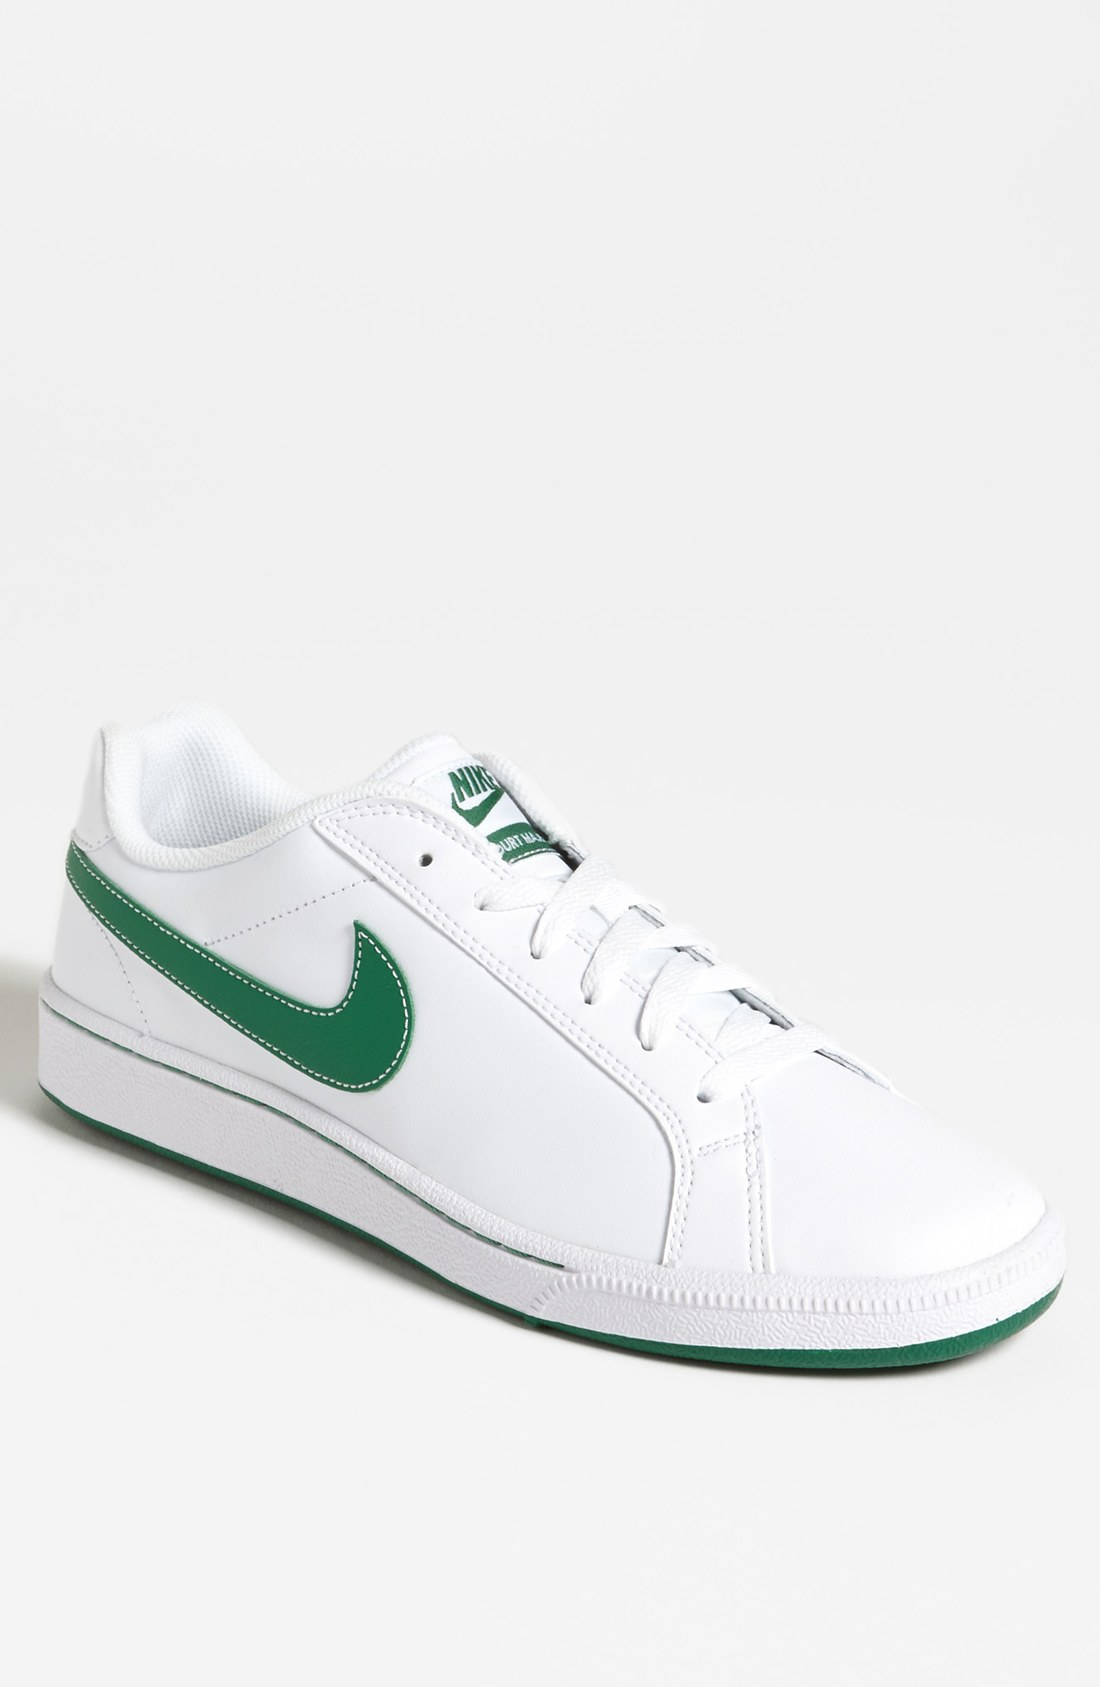 c66f9868ab12a8 Nike Killshot 2 Alternatives   malefashionadvice